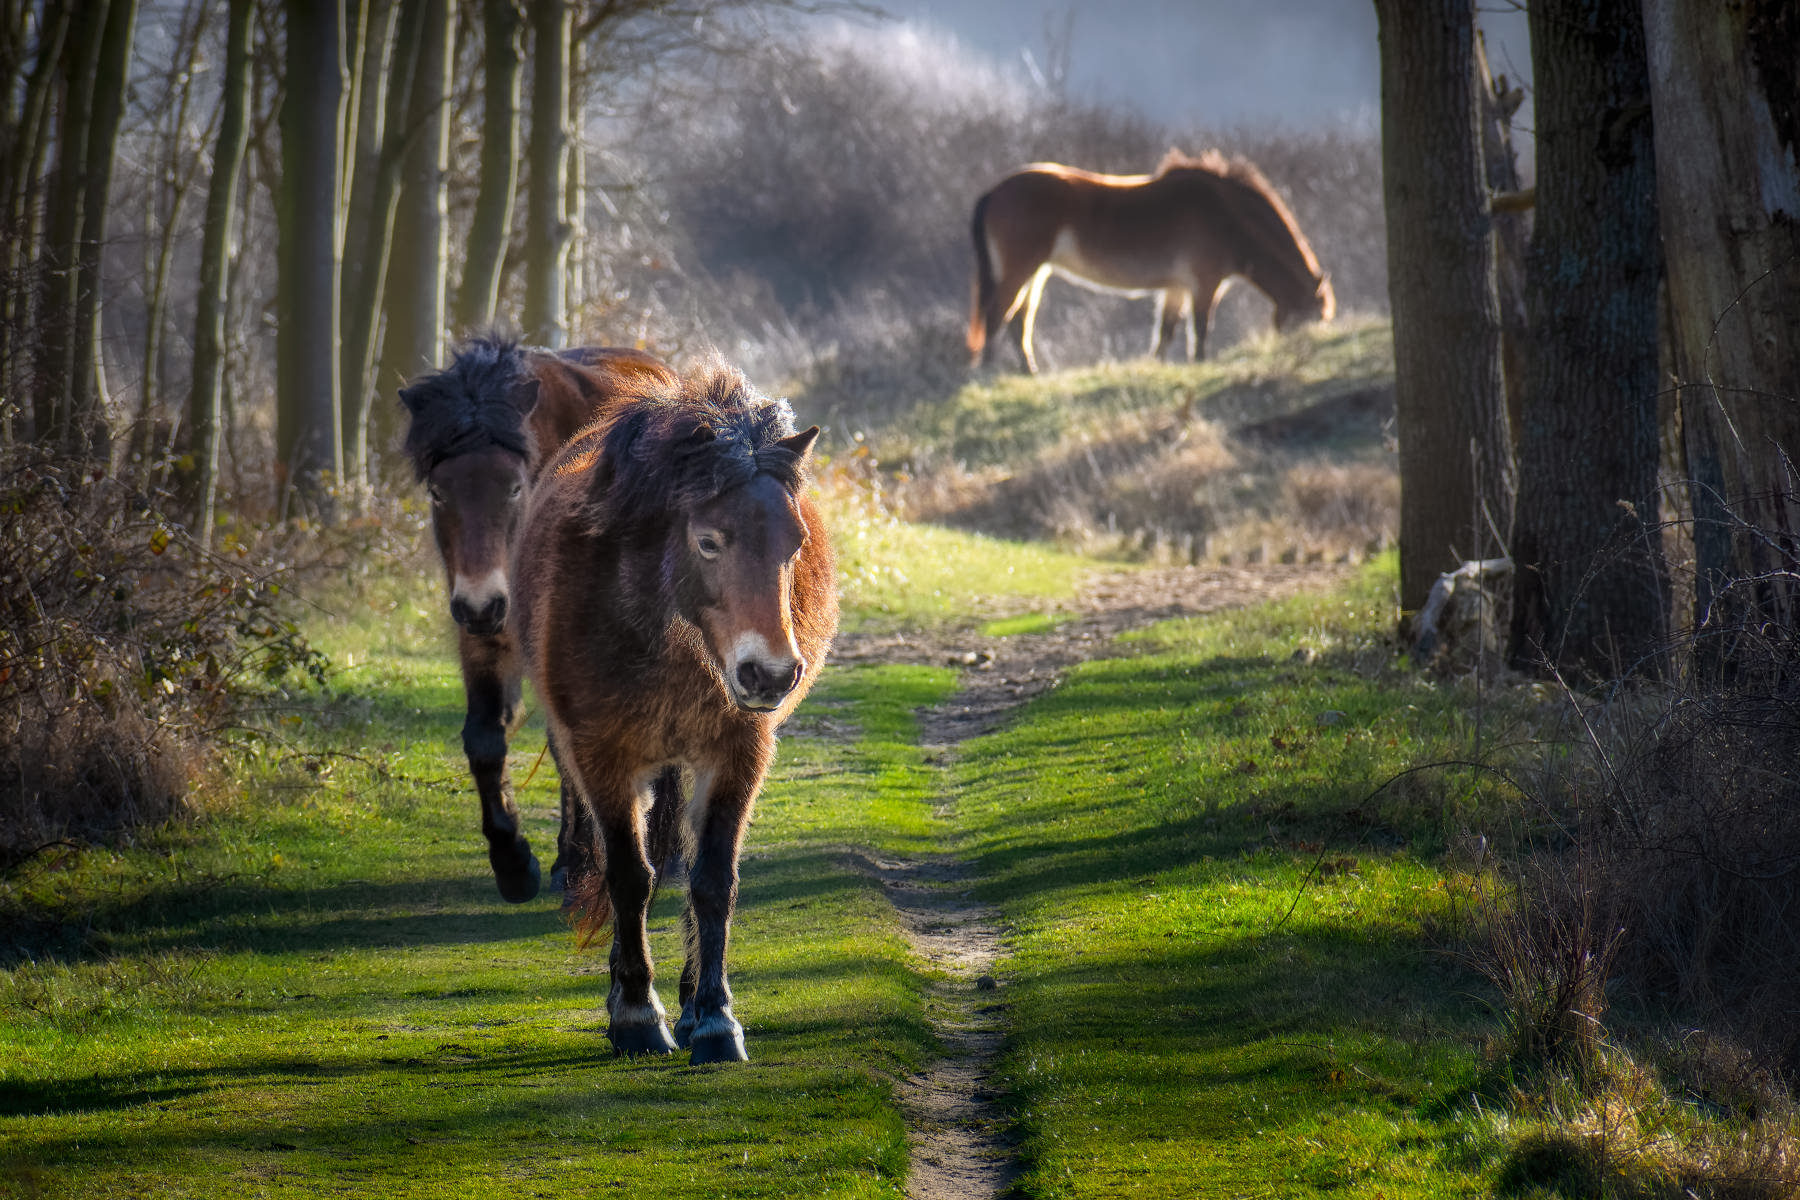 horses walking through a forest tunnel